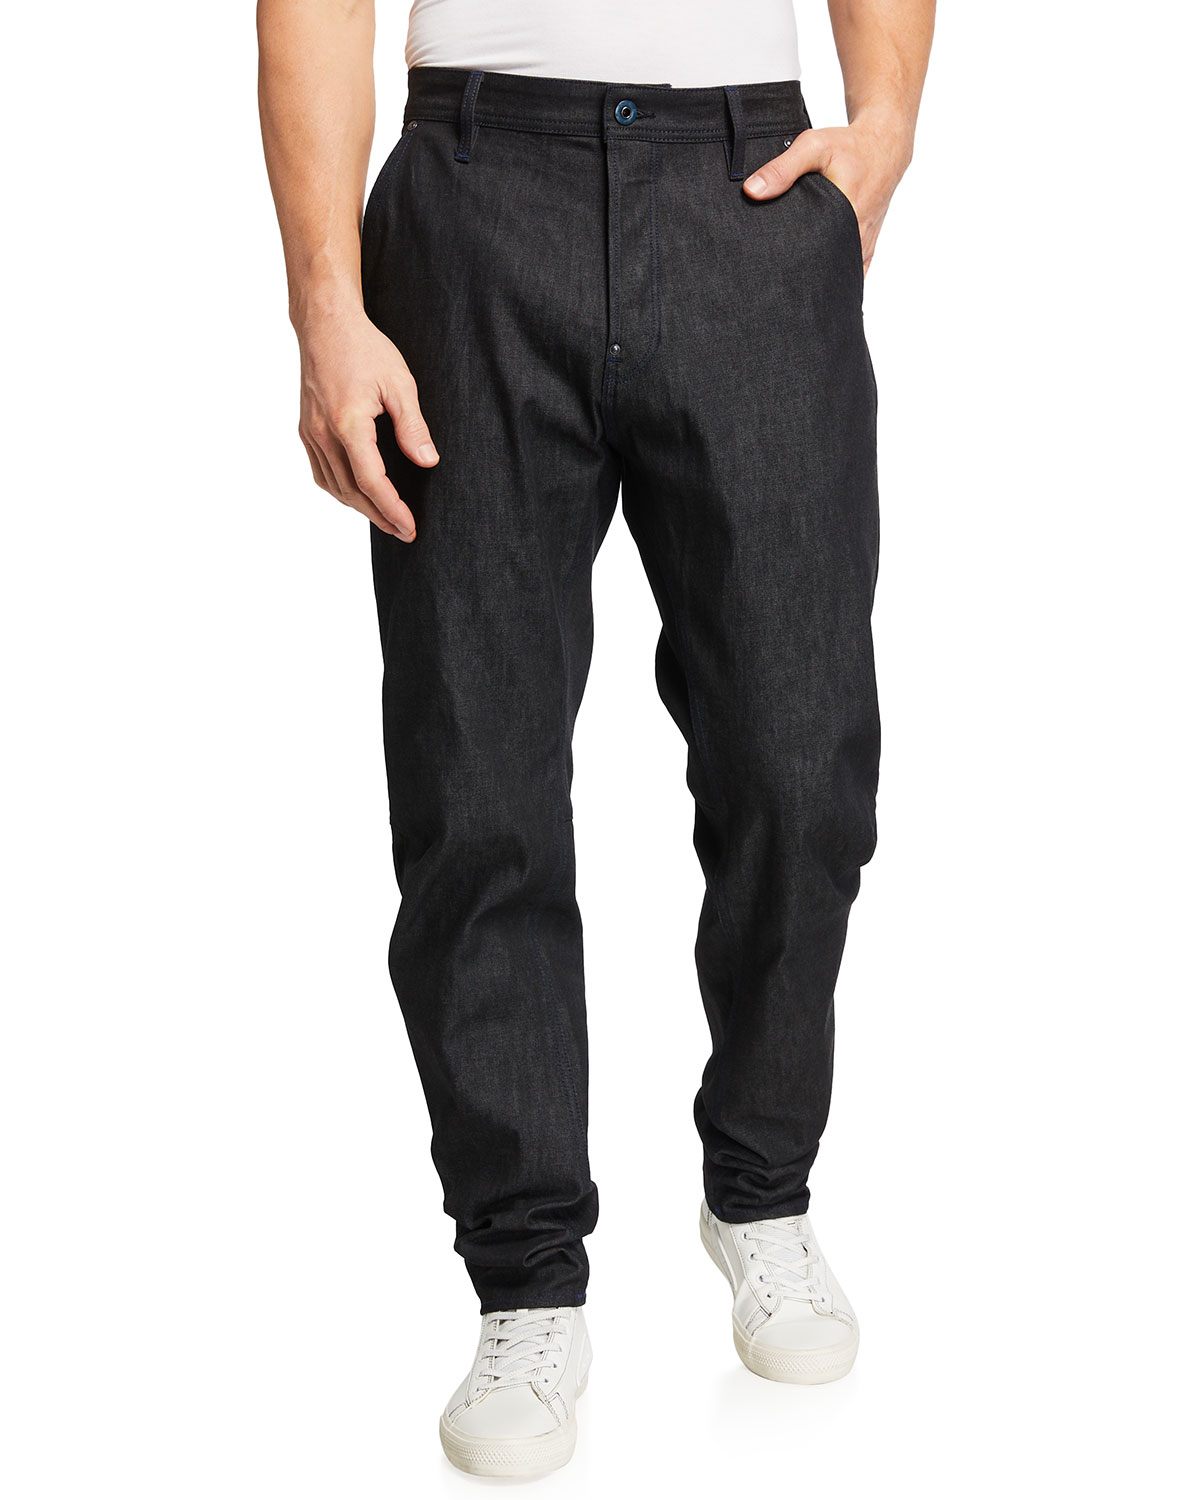 Men's Grip 3D Tapered Jeans